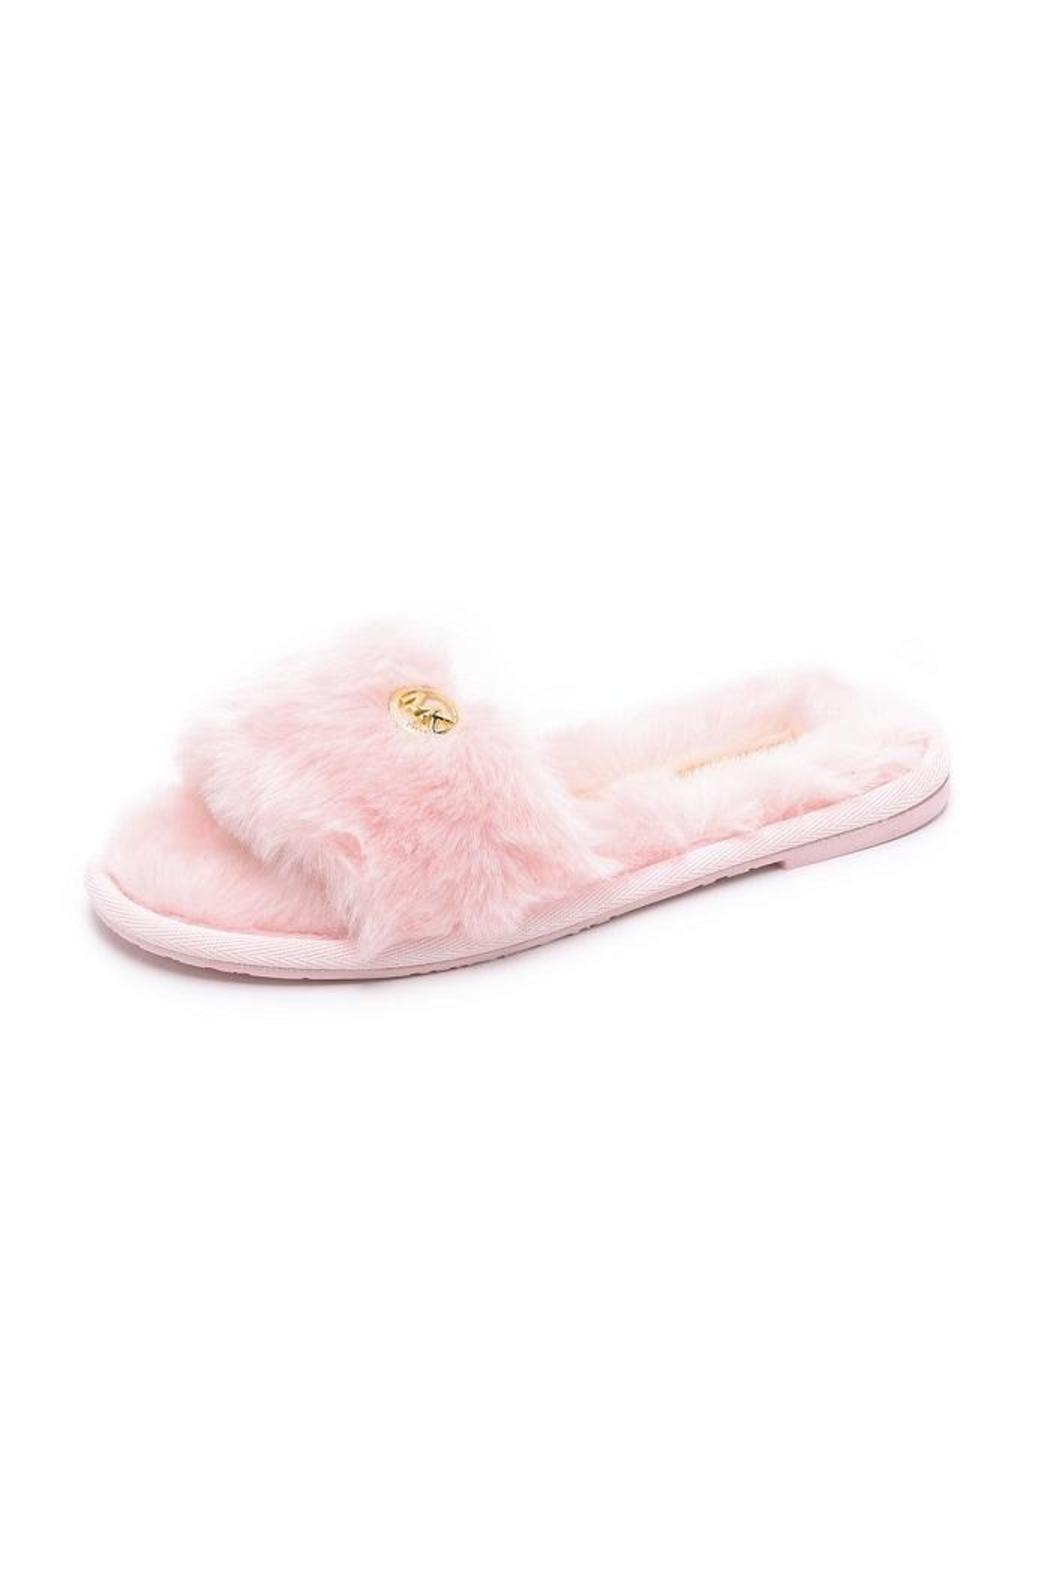 fcfb2fee8a3d Michael Kors Pink Fuzzy Slippers from Canada by Modern Sole — Shoptiques